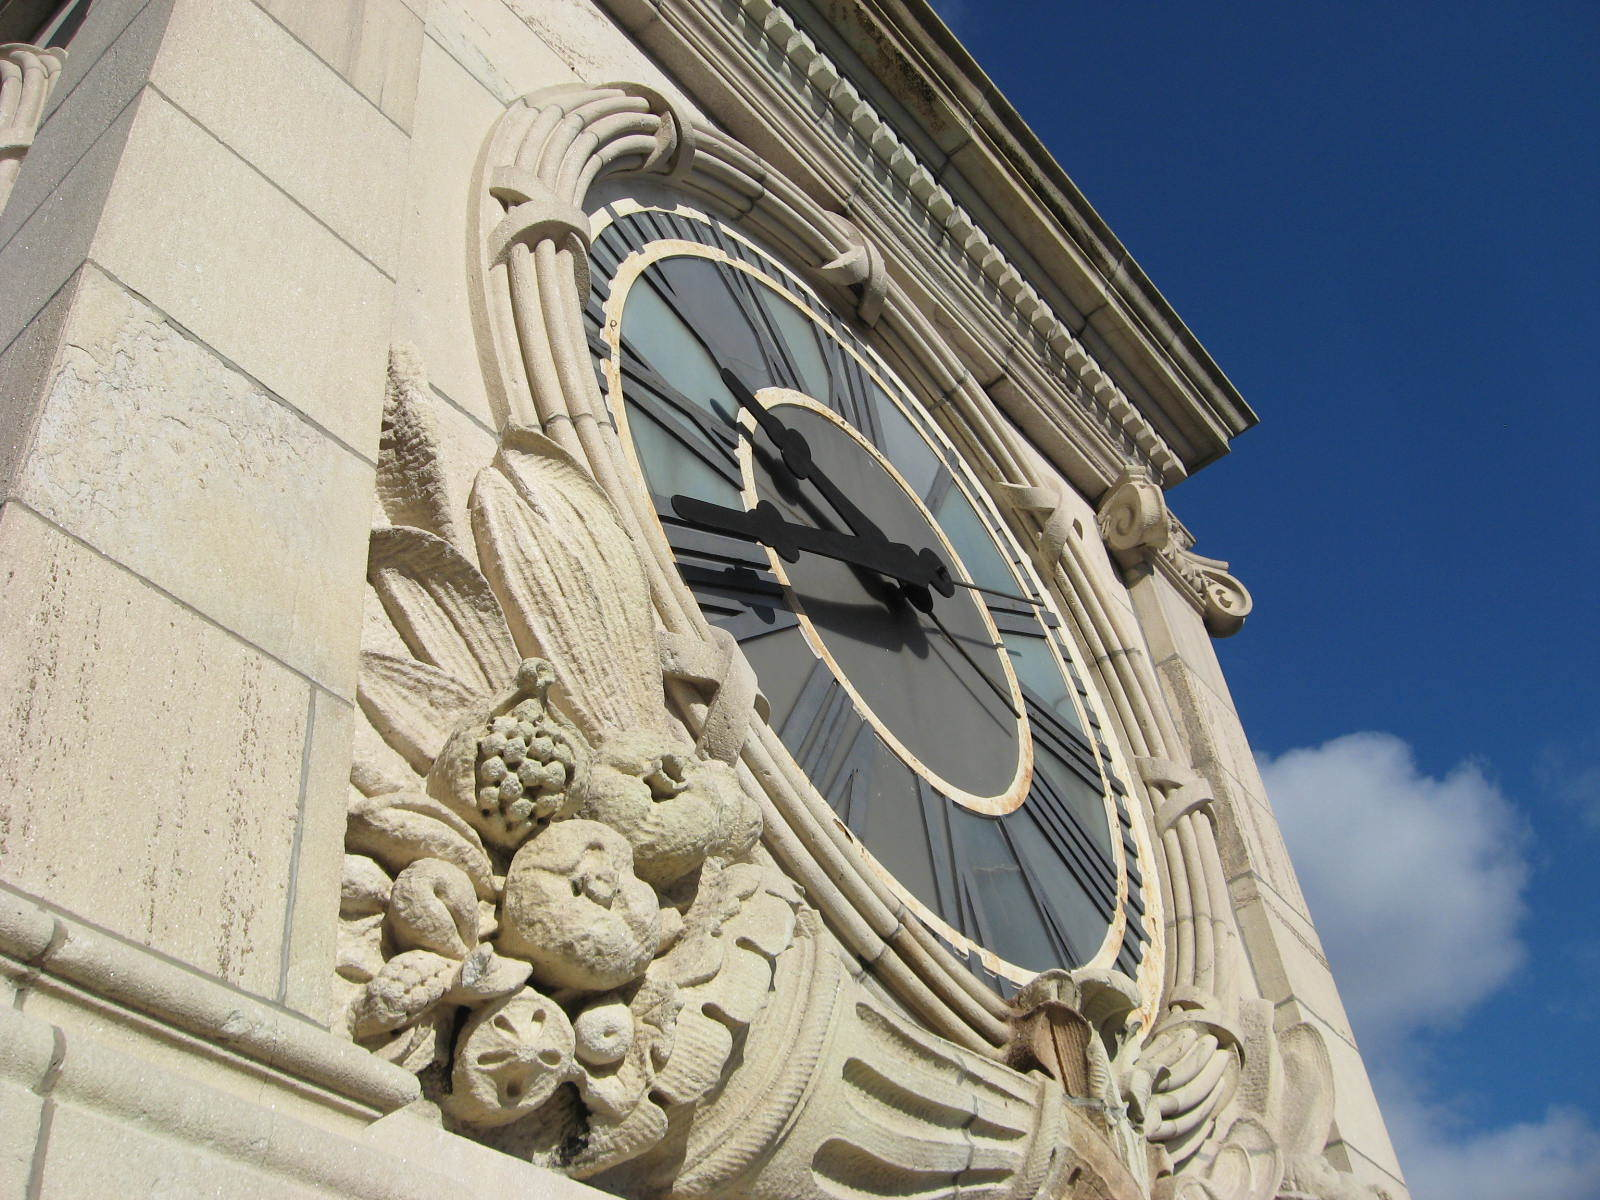 Time's up for Tribeca's landmarked clock tower, court rules